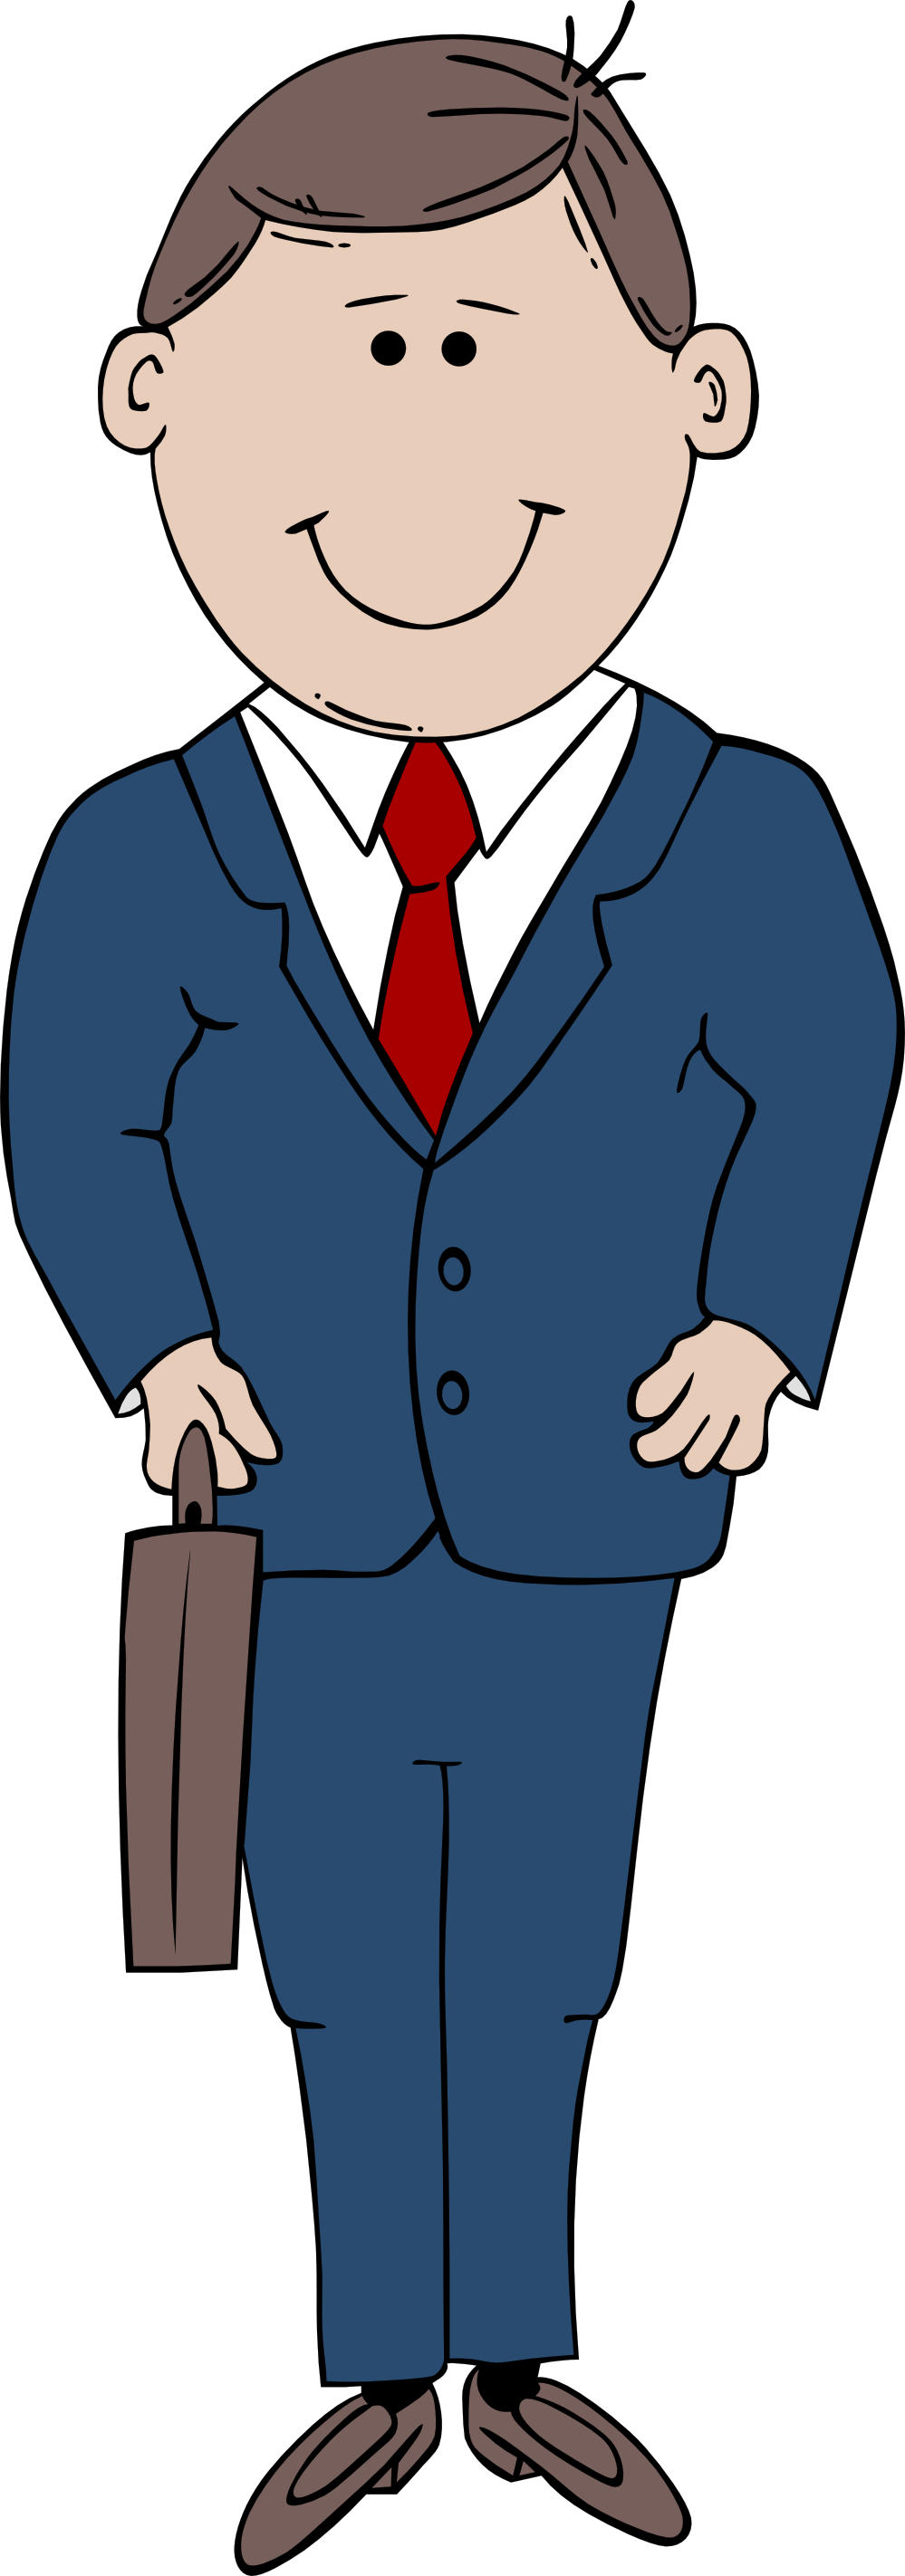 Man in a suit clipart.